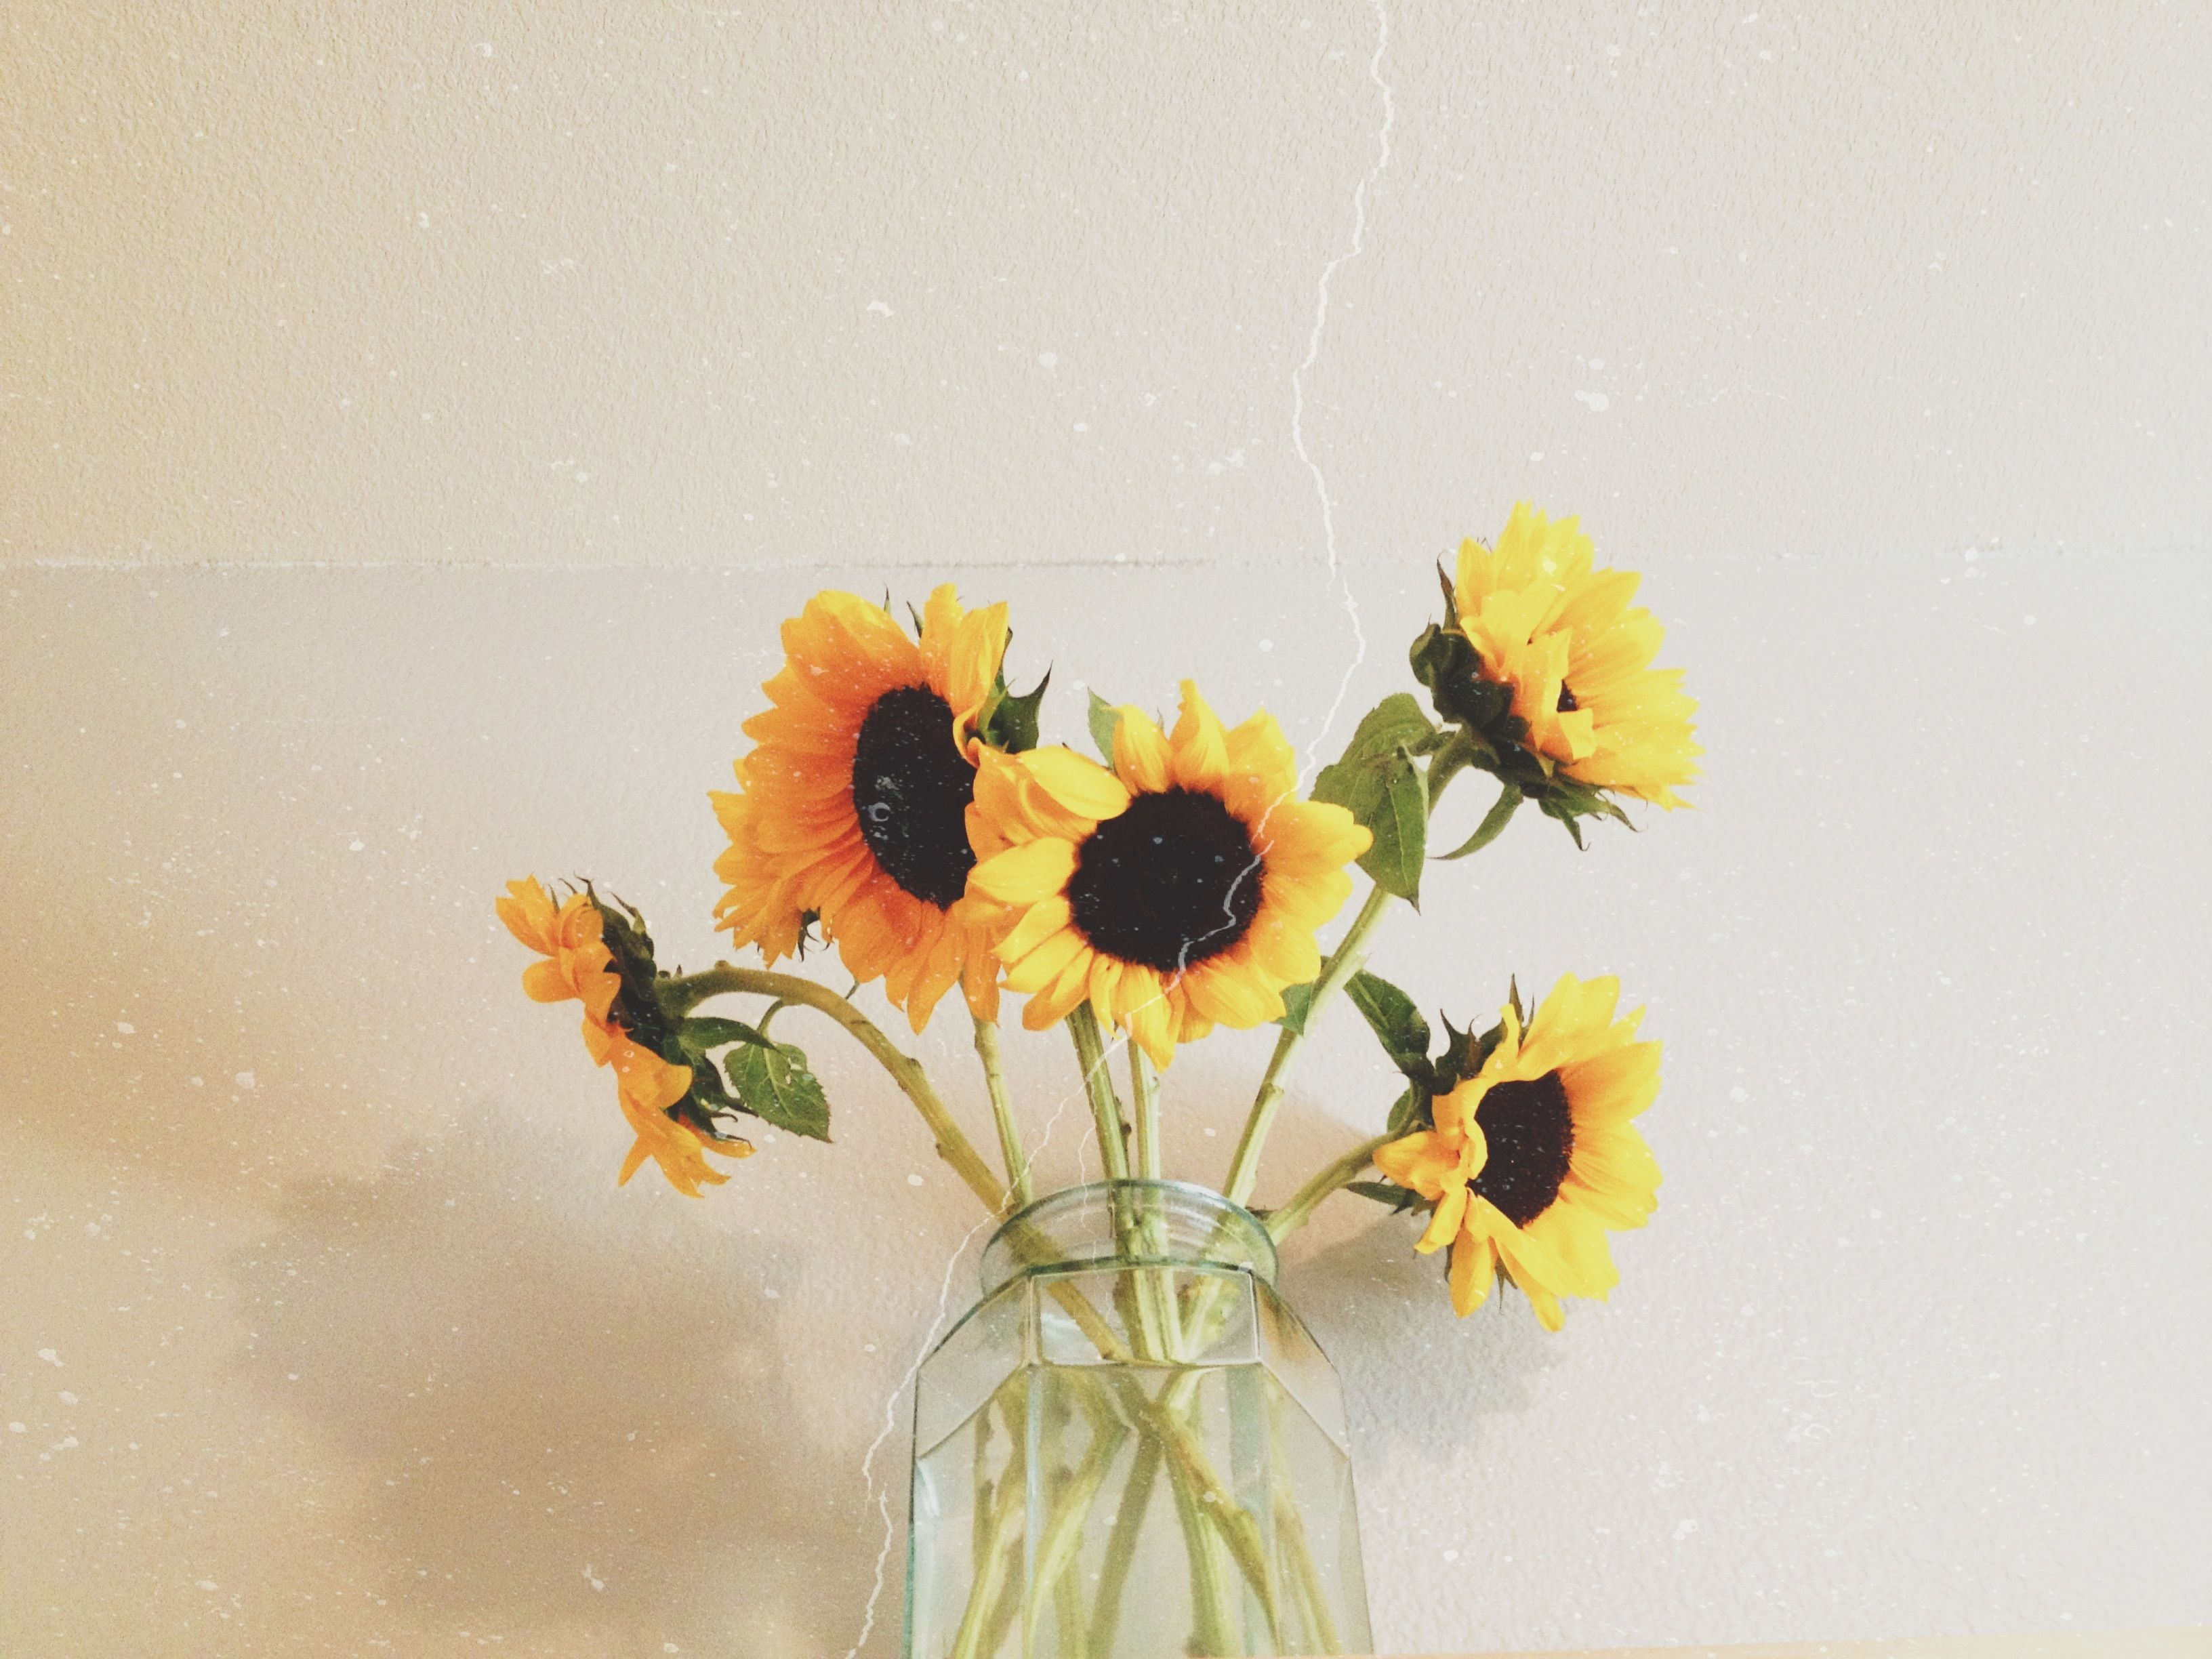 5651x4000 minimalist floral laptop wallpaper. 28 Simple Ways To Everyday Happiness   Pretty flowers ...